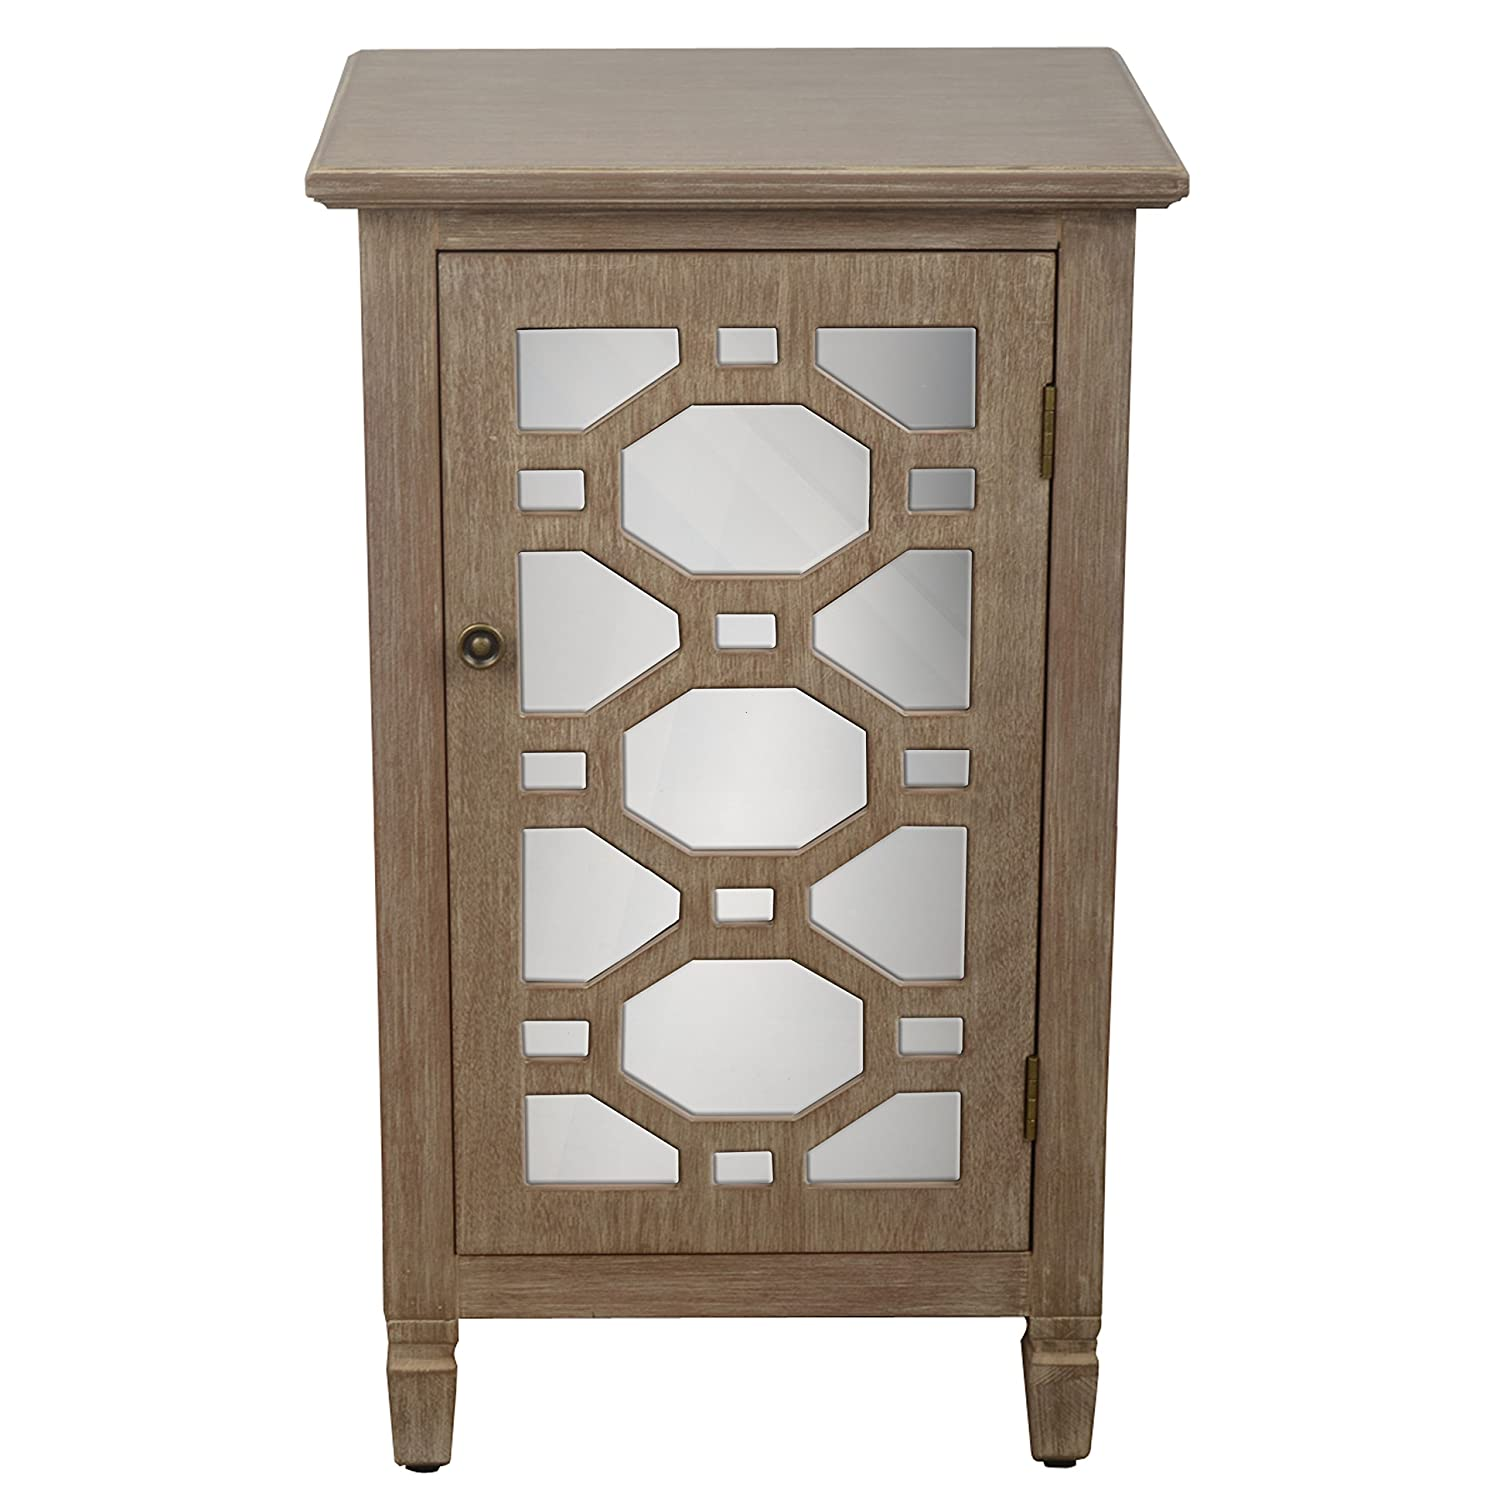 D/écor Therapy Fr6360 End Table Antique Iced Blue Décor Therapy